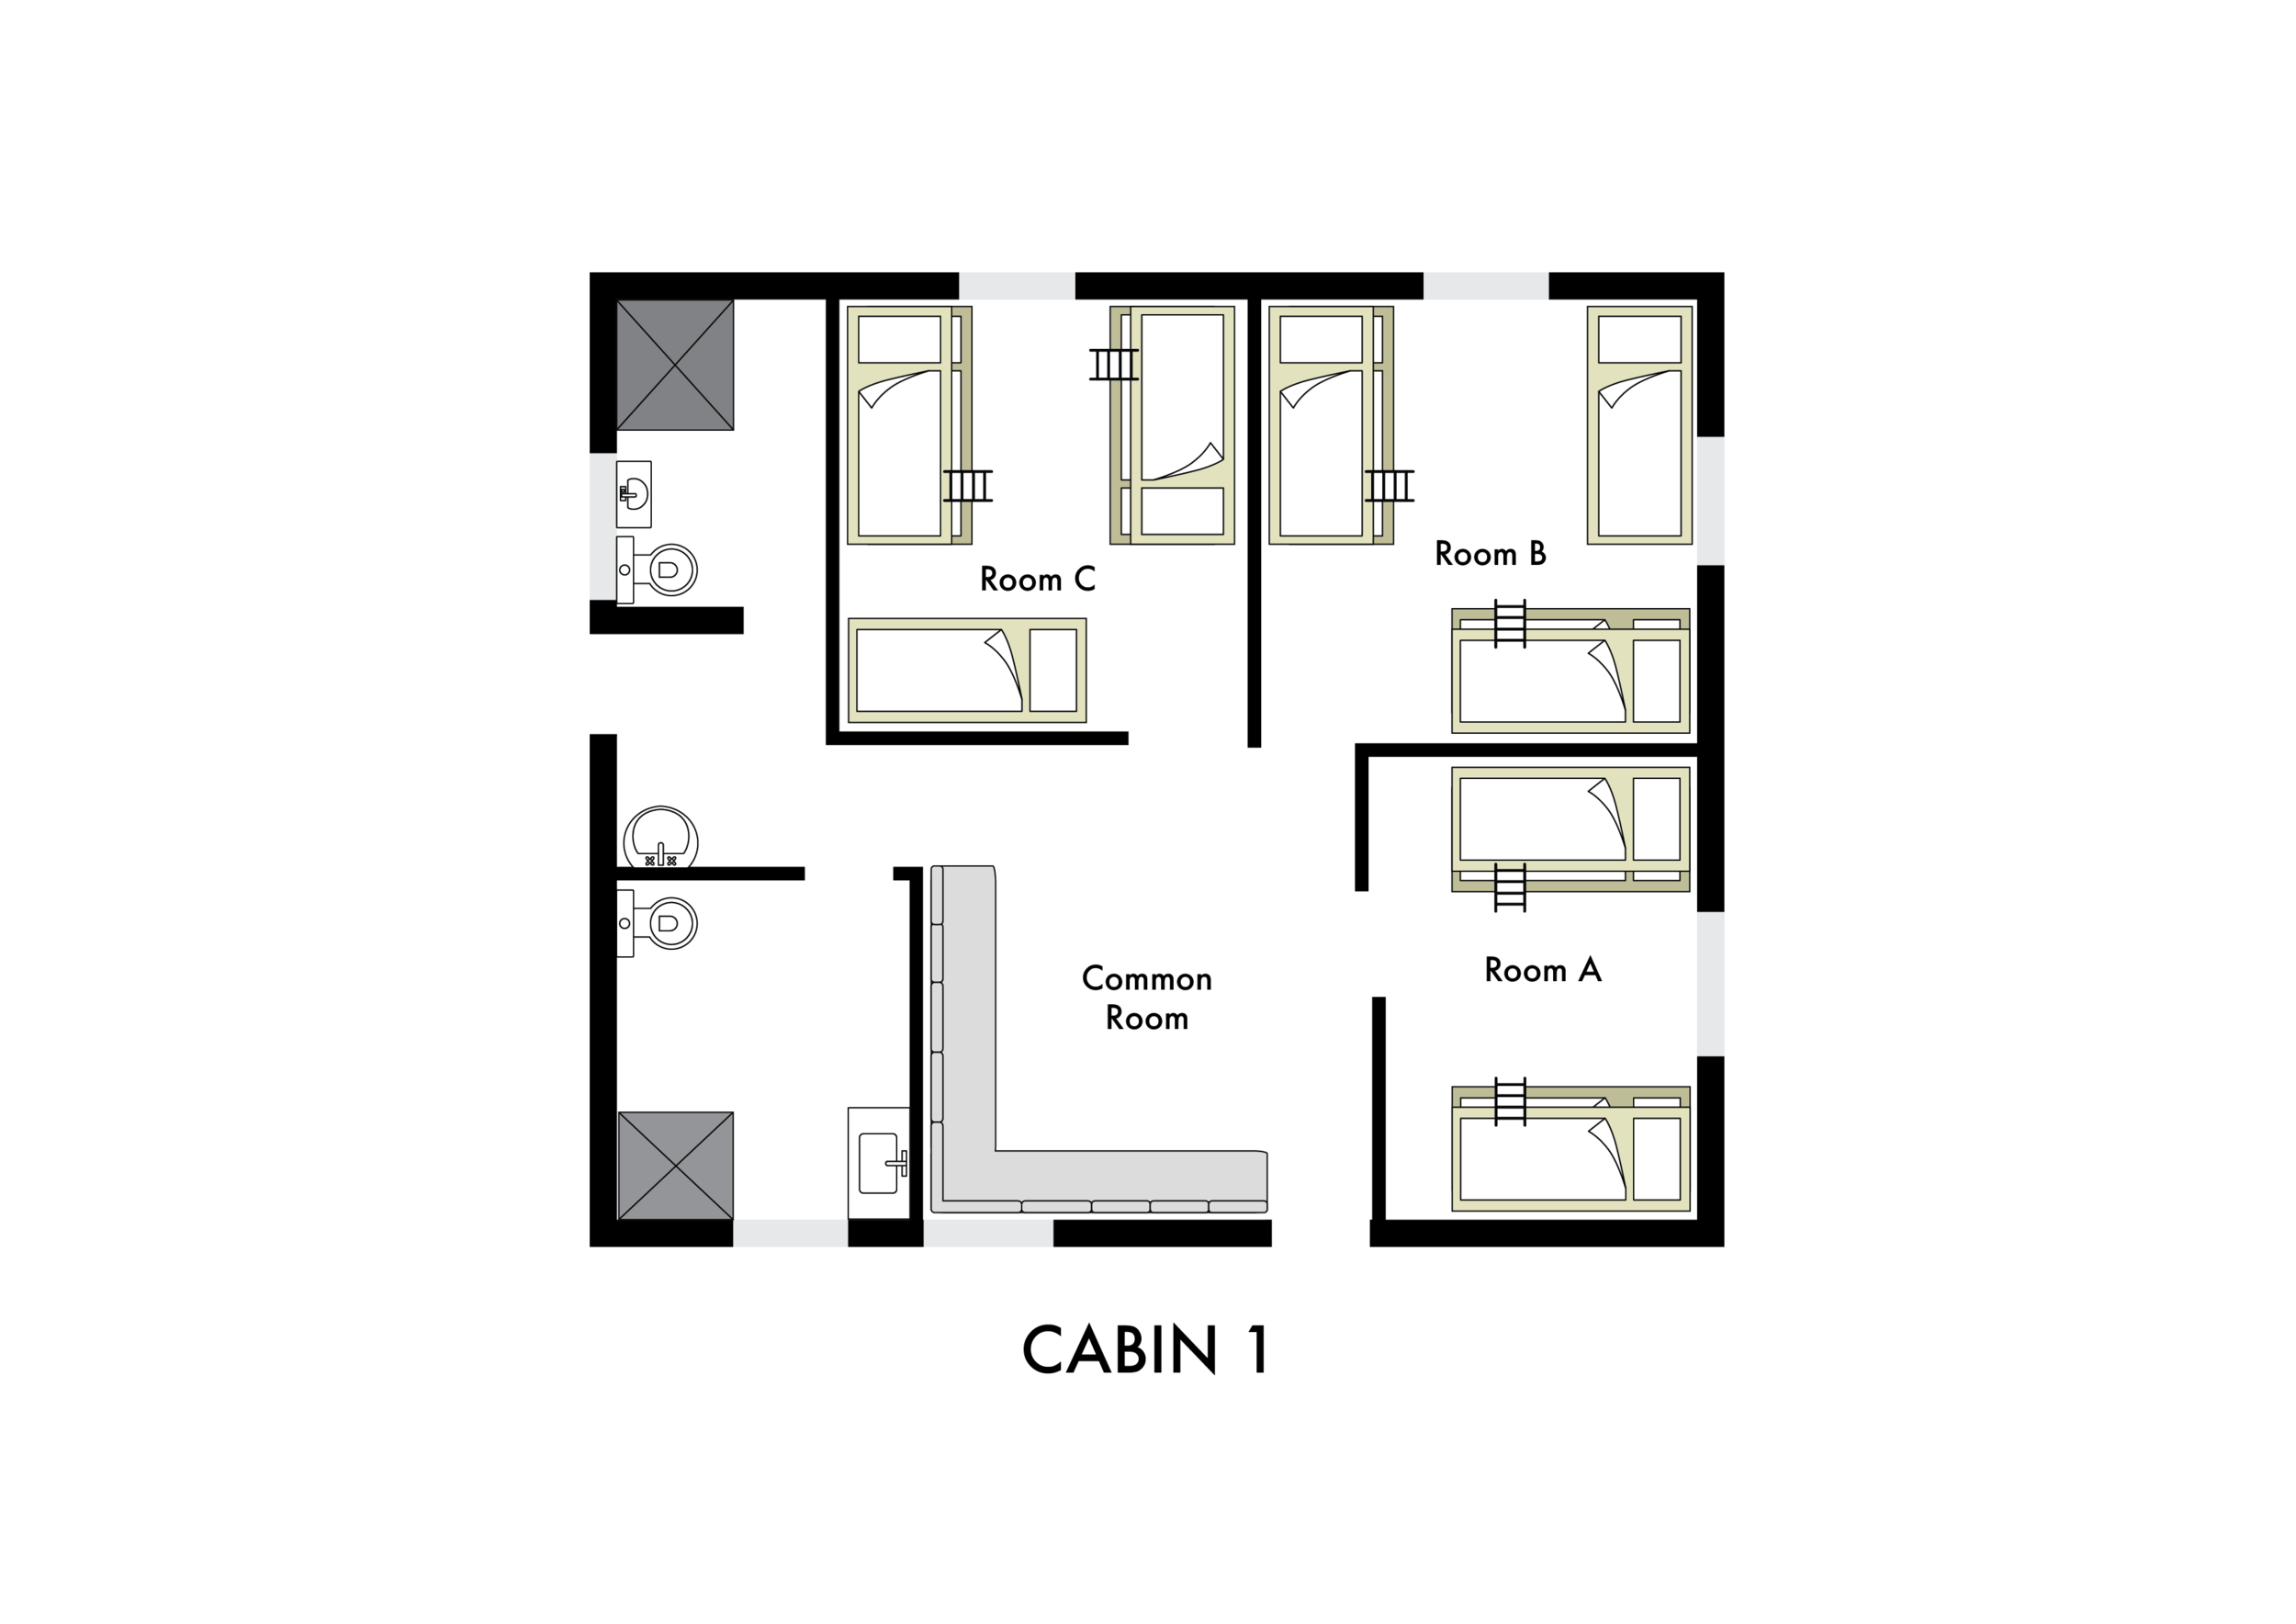 Cabin 1_03.png